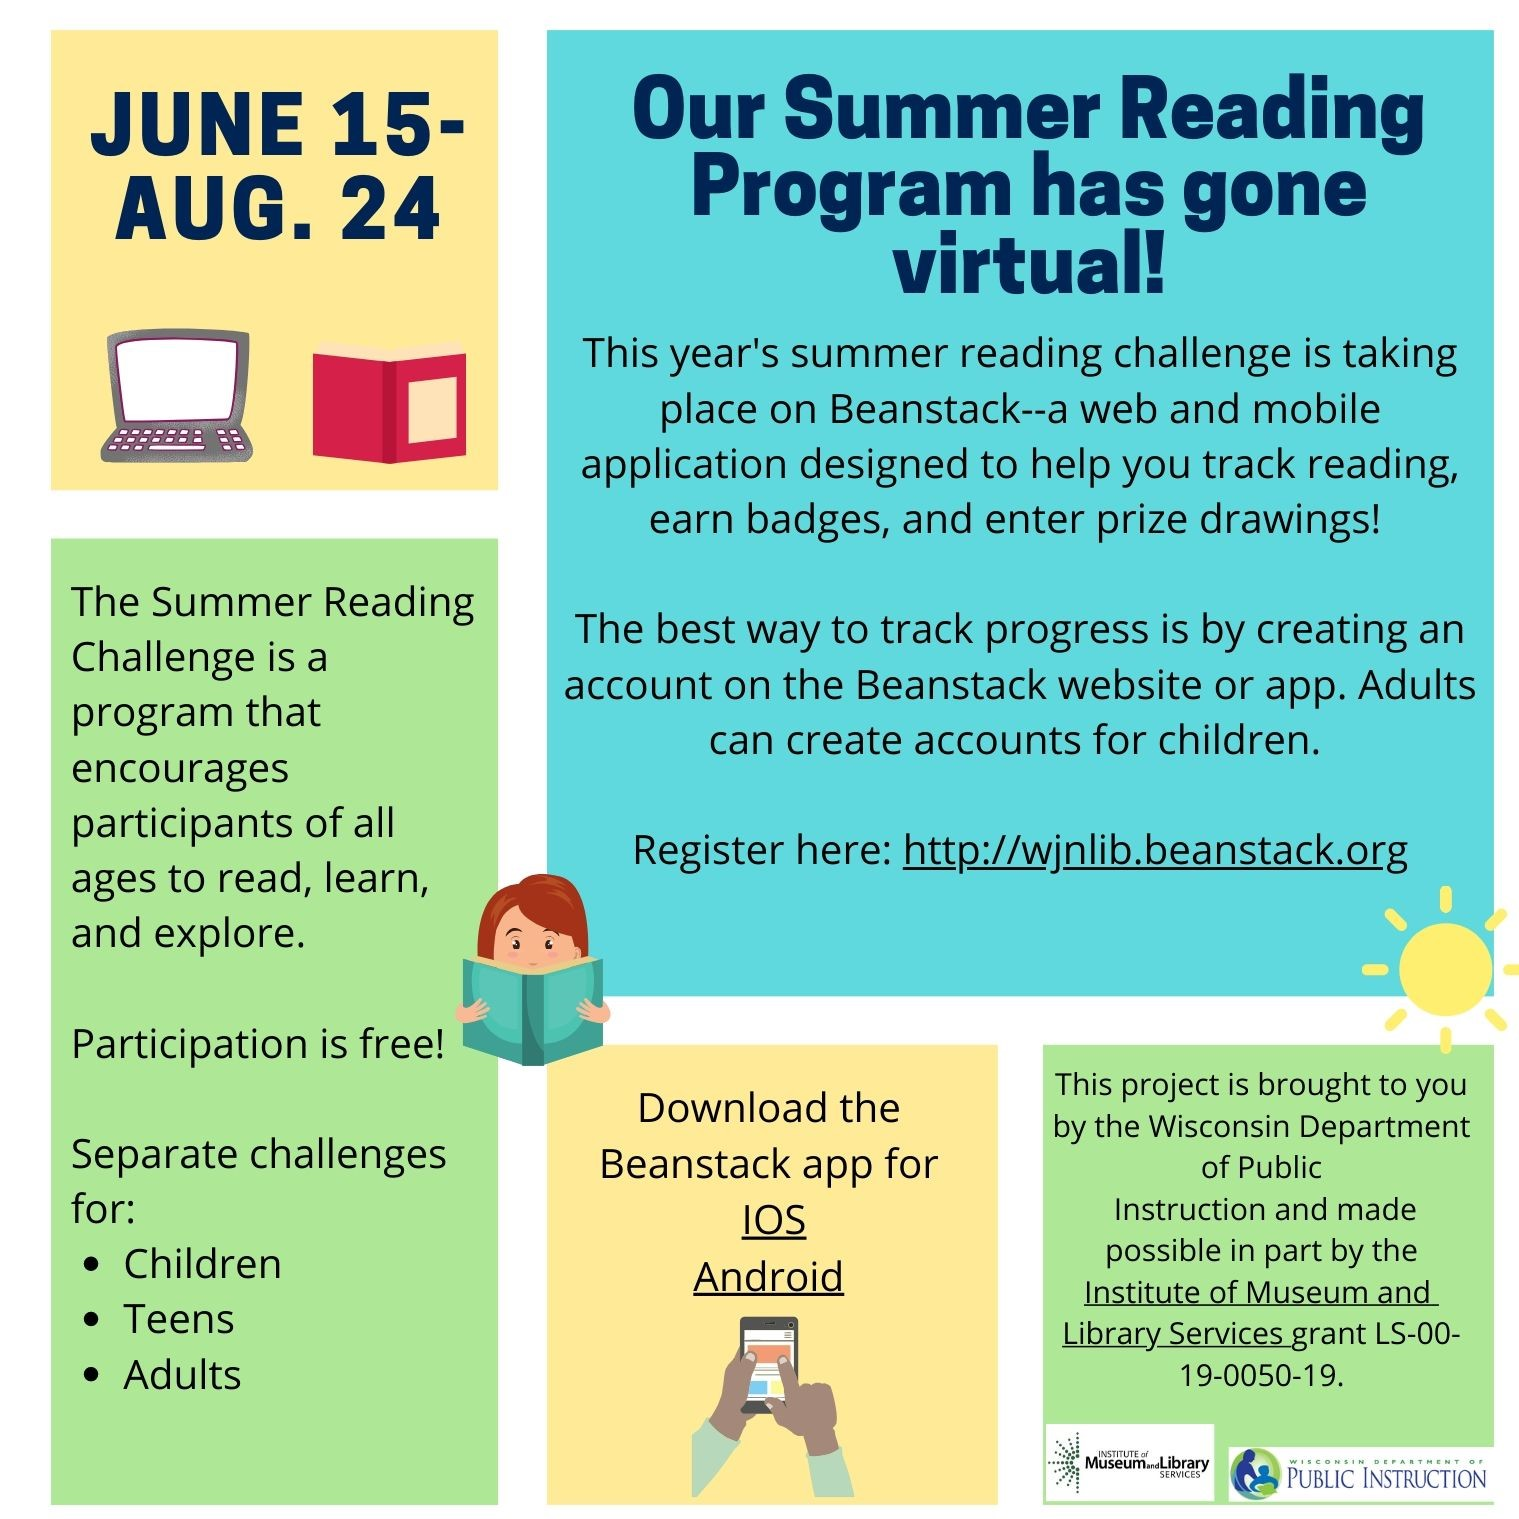 Summer Reading Challenge poster with clipart of a laptop, a book, a girl reading a book, hands holding a smartphone, and the sun.